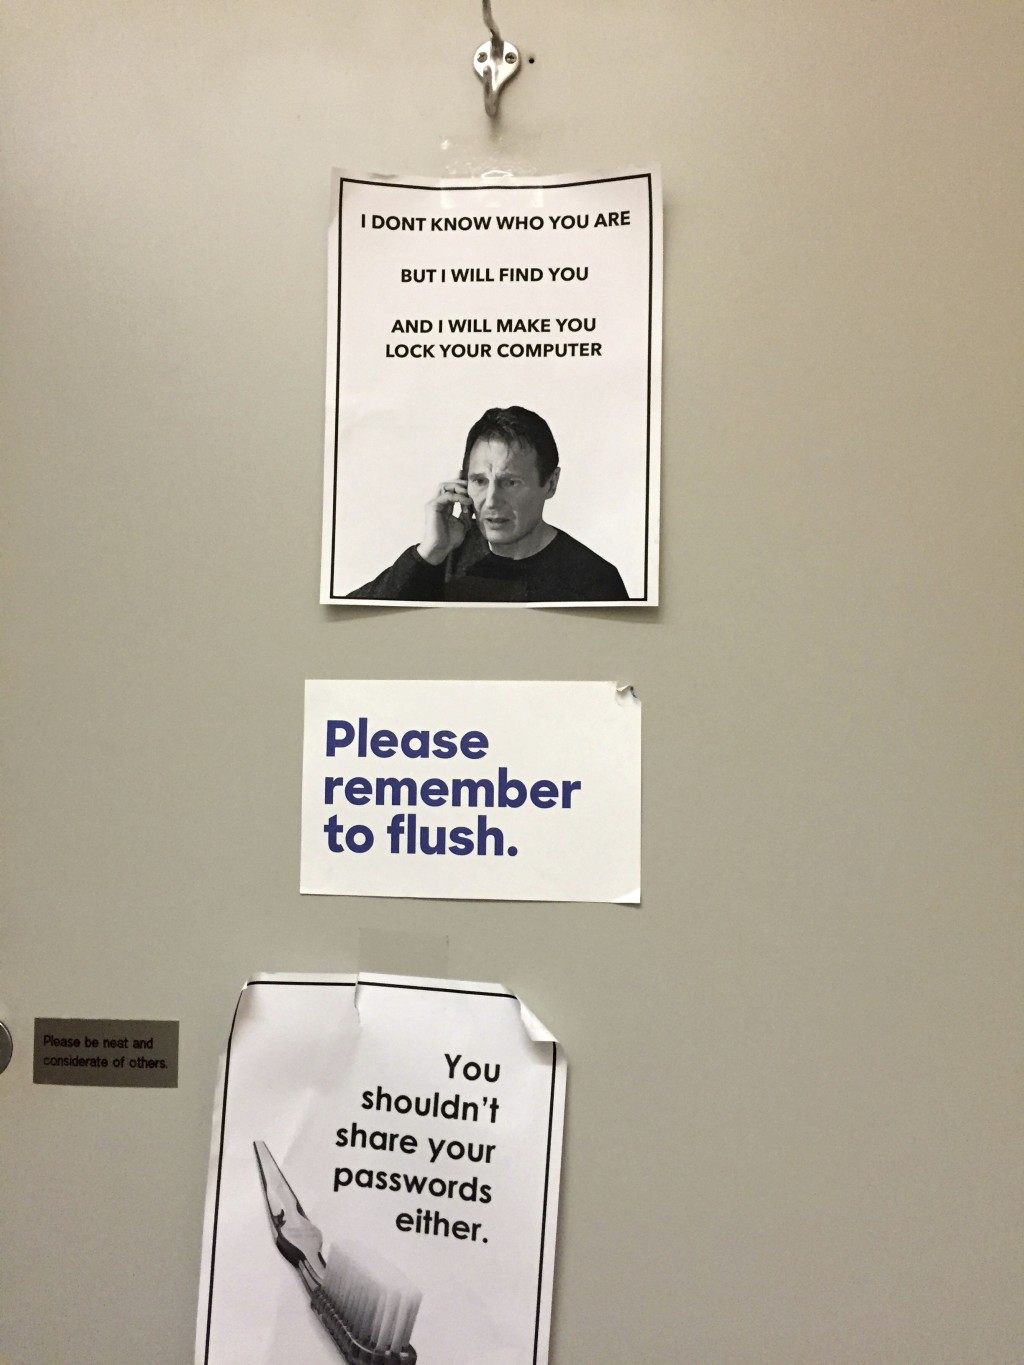 This June 29, 2016 photo shows signs posted in a bathroom at Hillary Clinton's campaign headquarters in the Brooklyn borough of New York, reminding ca...